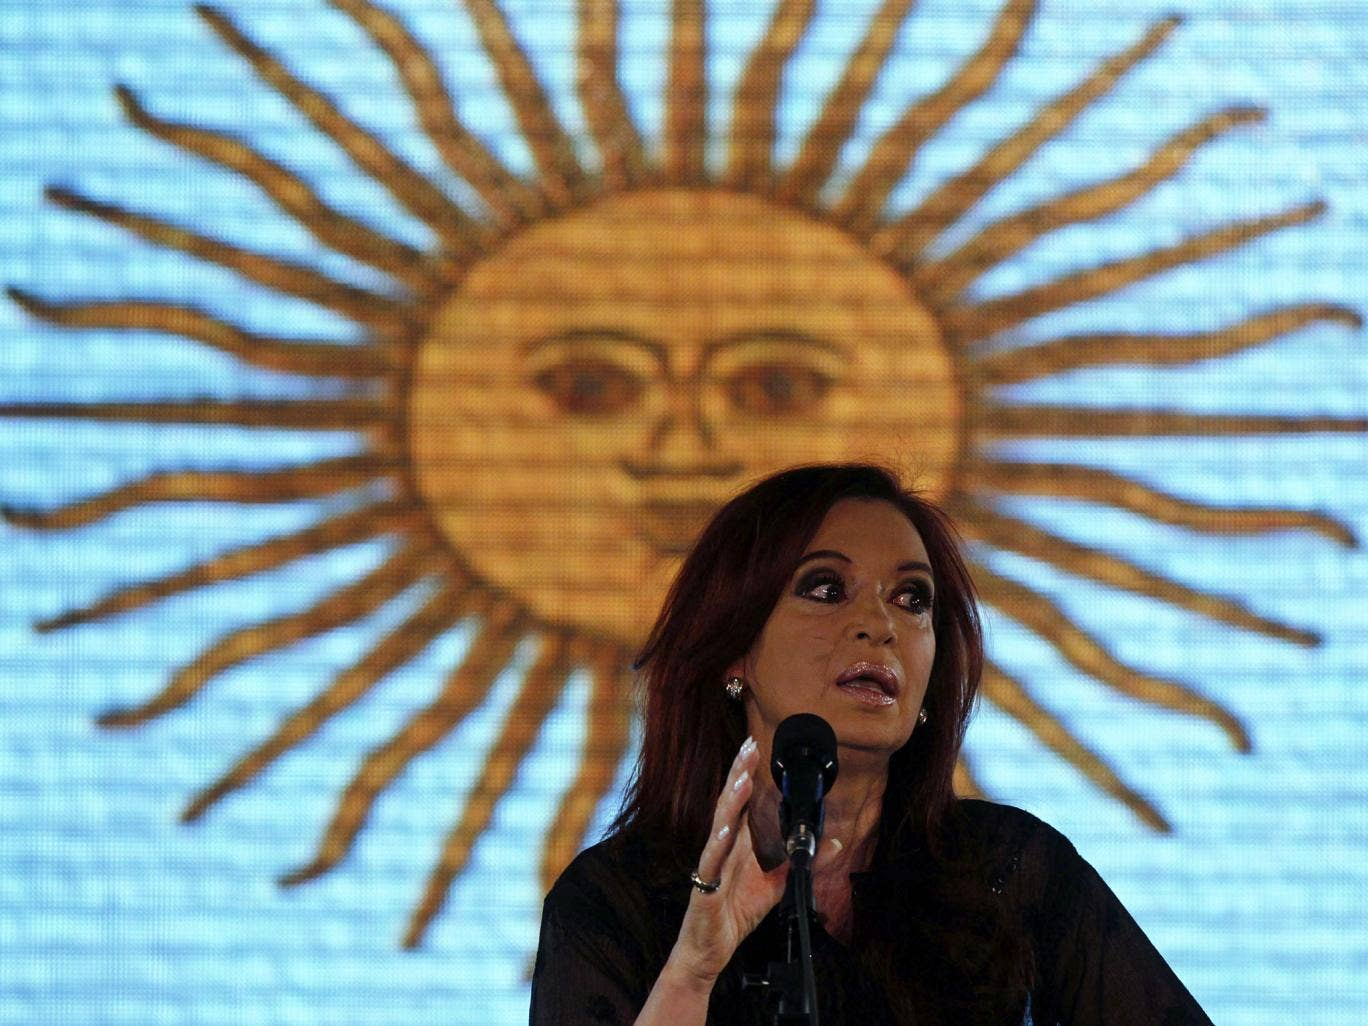 Cristina Fernandez de Kirchner insists the debt paper held by Paul Singer is illegitimate